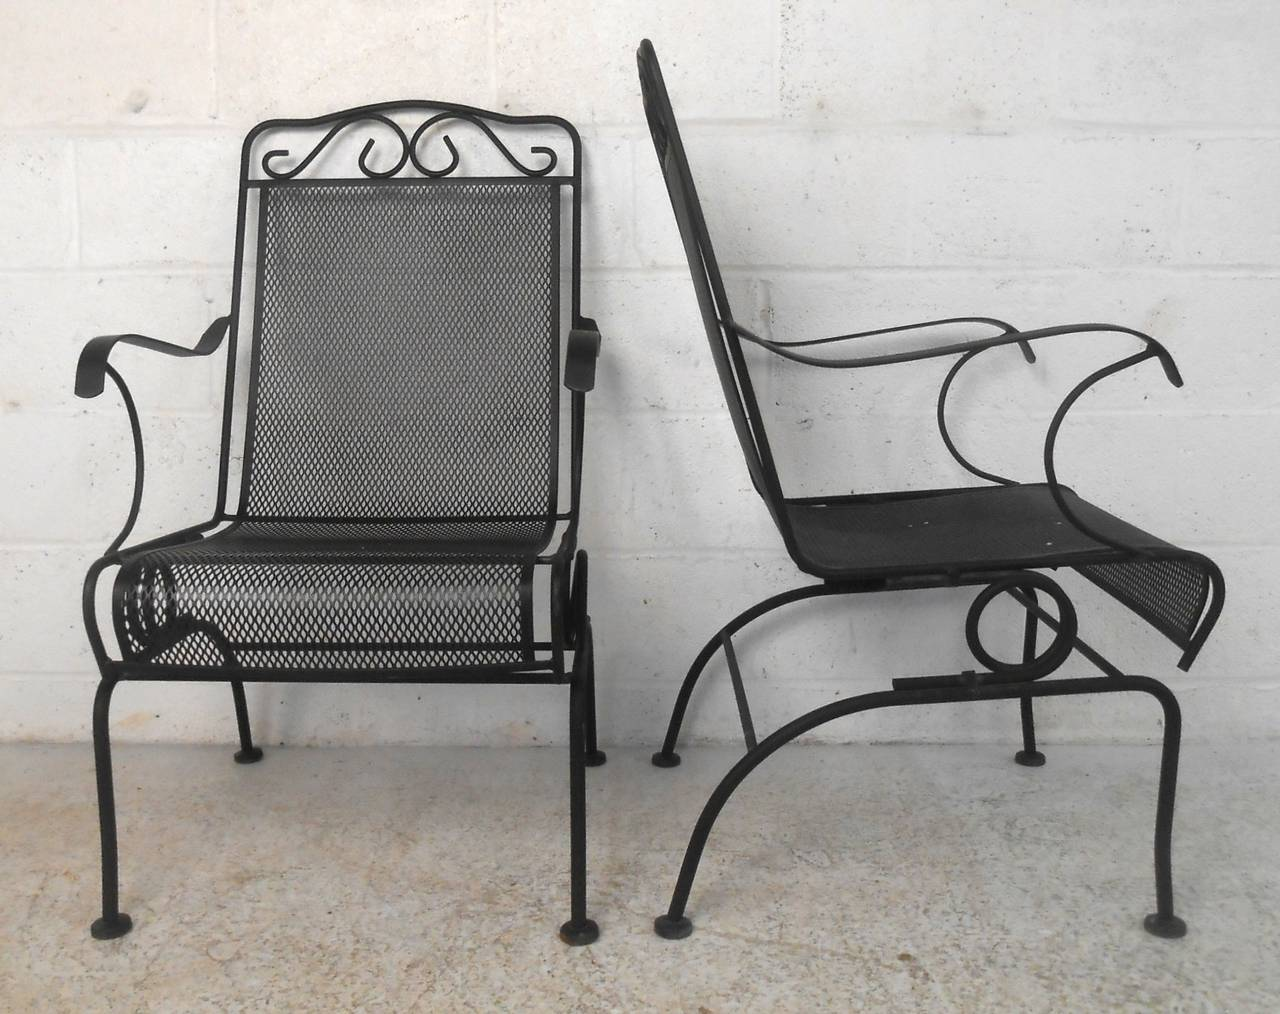 Iron Patio Chairs Set Of Ornate Cast Iron Patio Chairs For Sale At 1stdibs